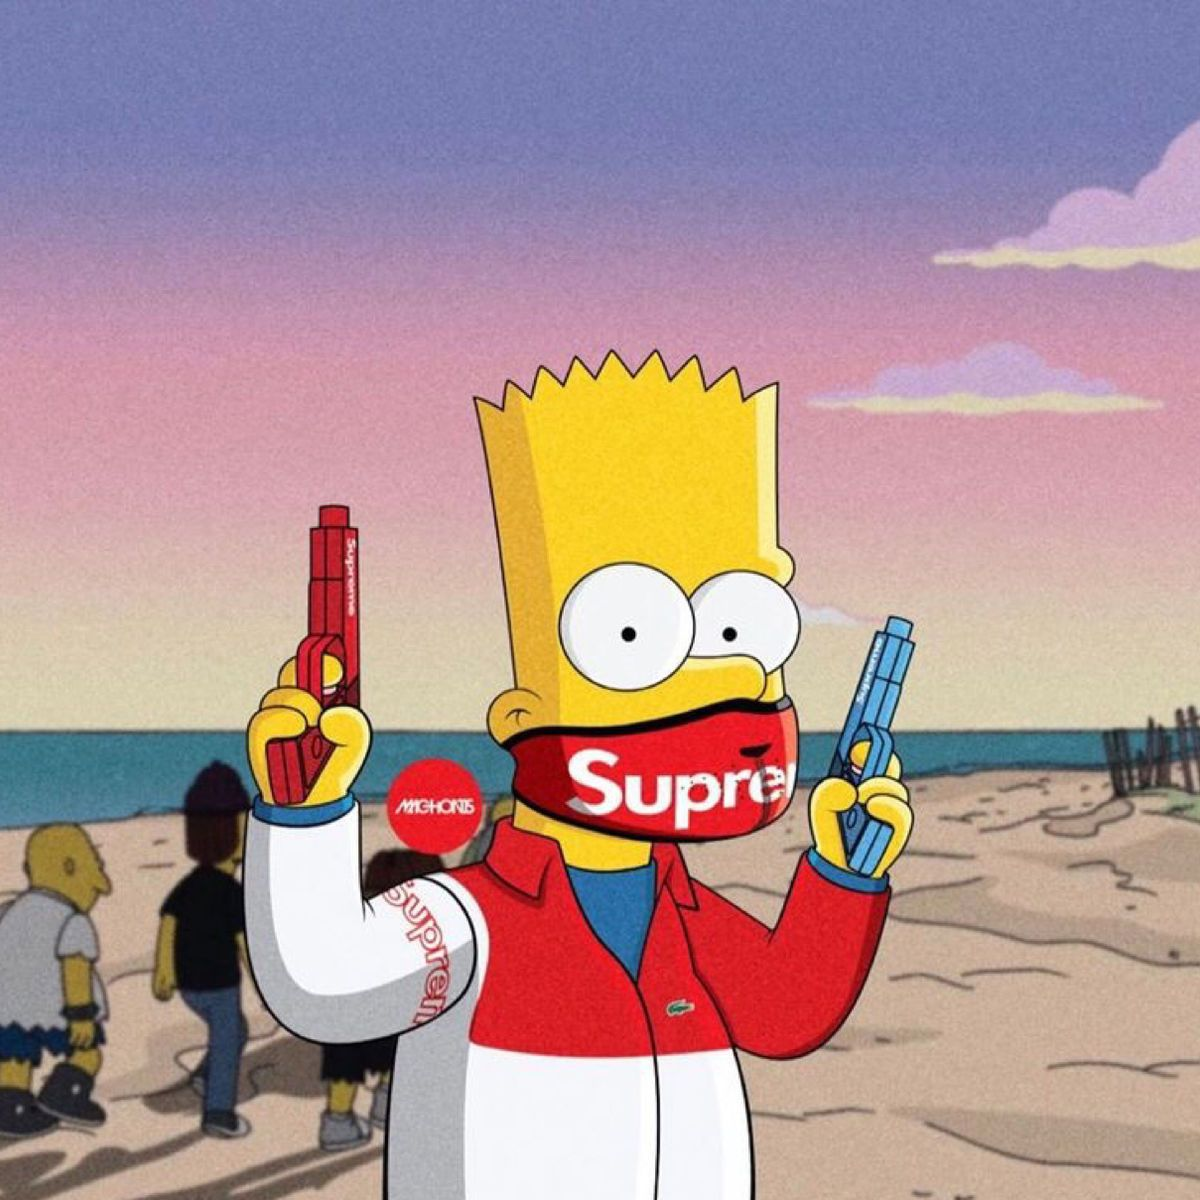 Connecting To The Itunes Store Simpson Wallpaper Iphone Bart Simpson Art Supreme Wallpaper